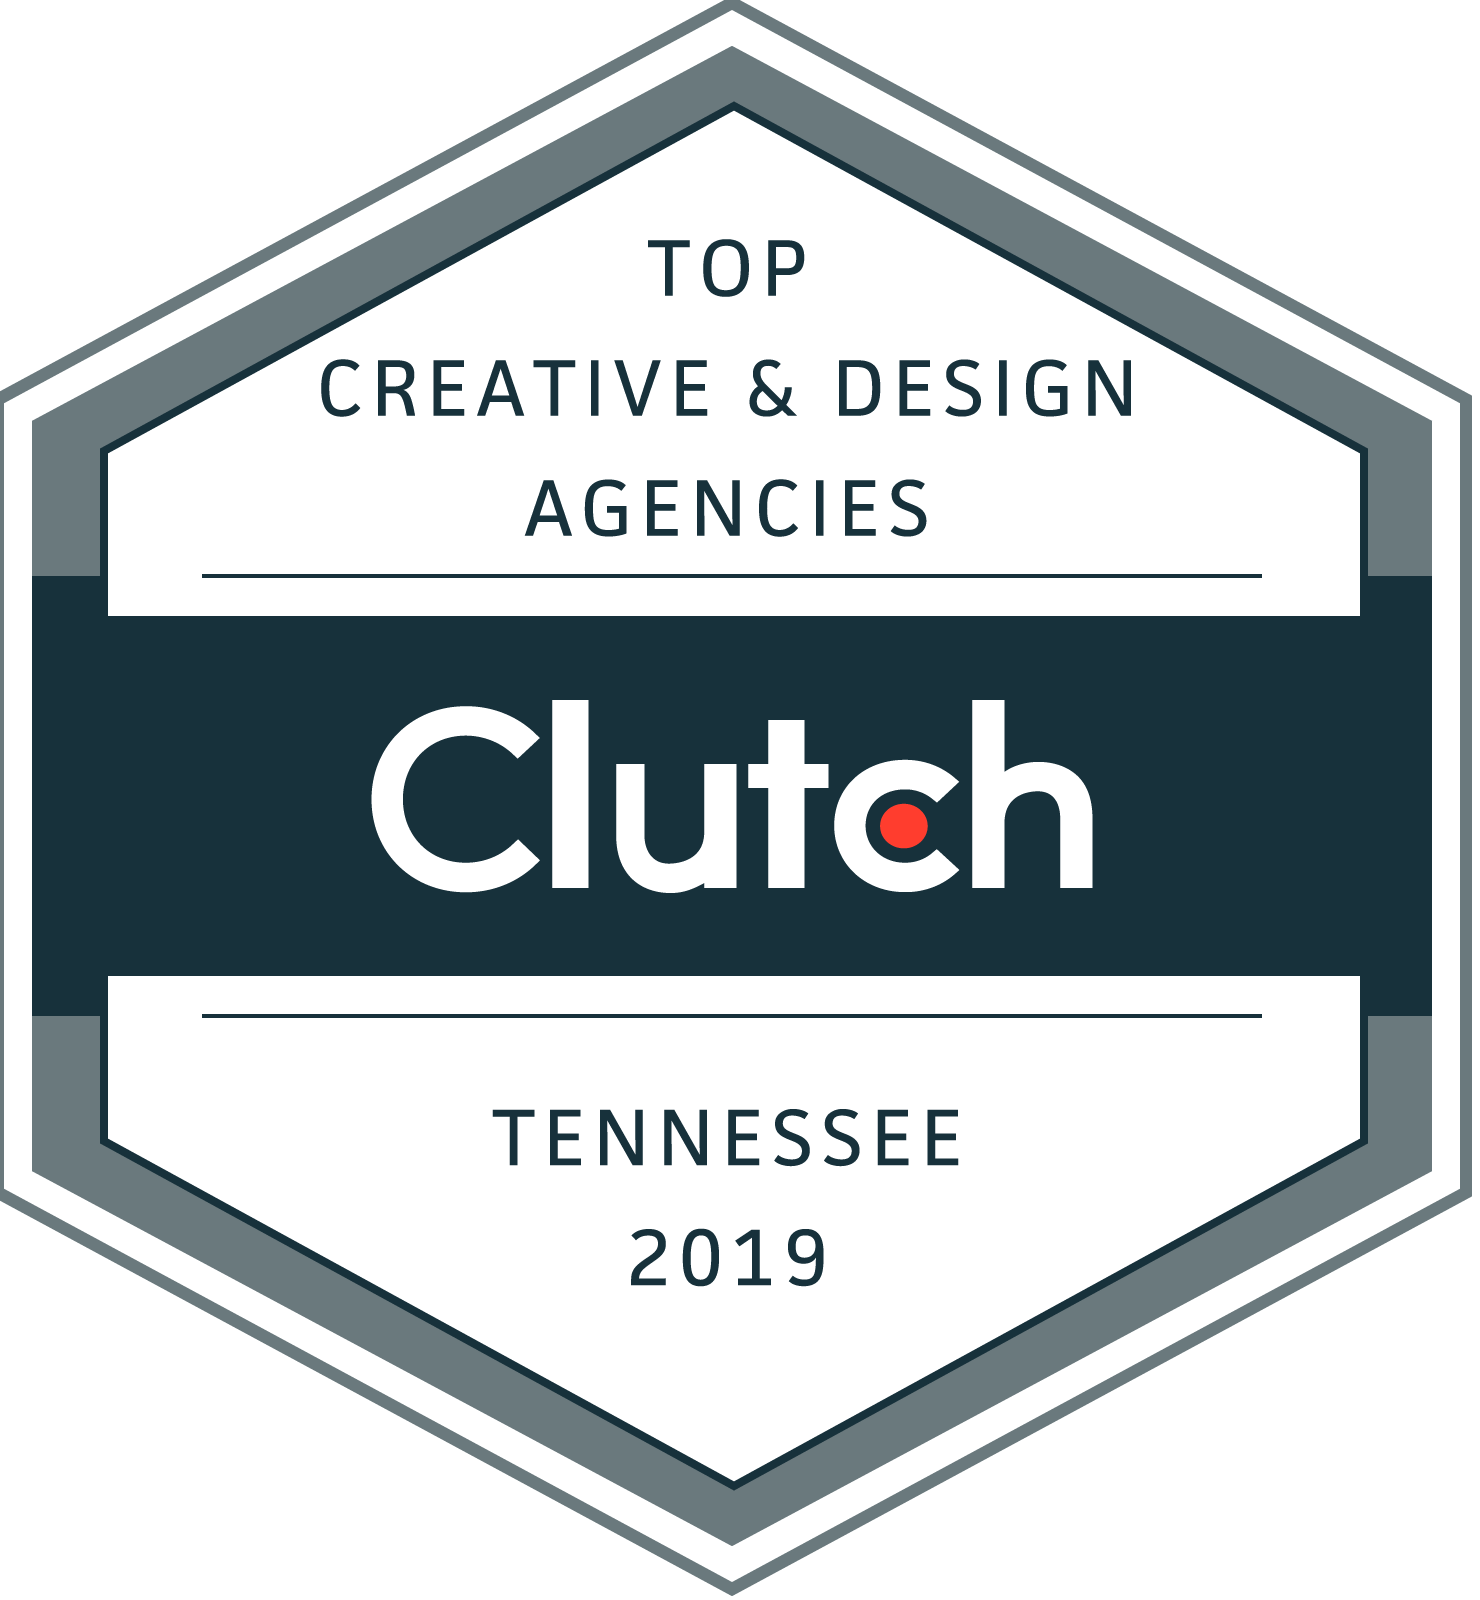 Top Creative & Design Agencies Tennessee